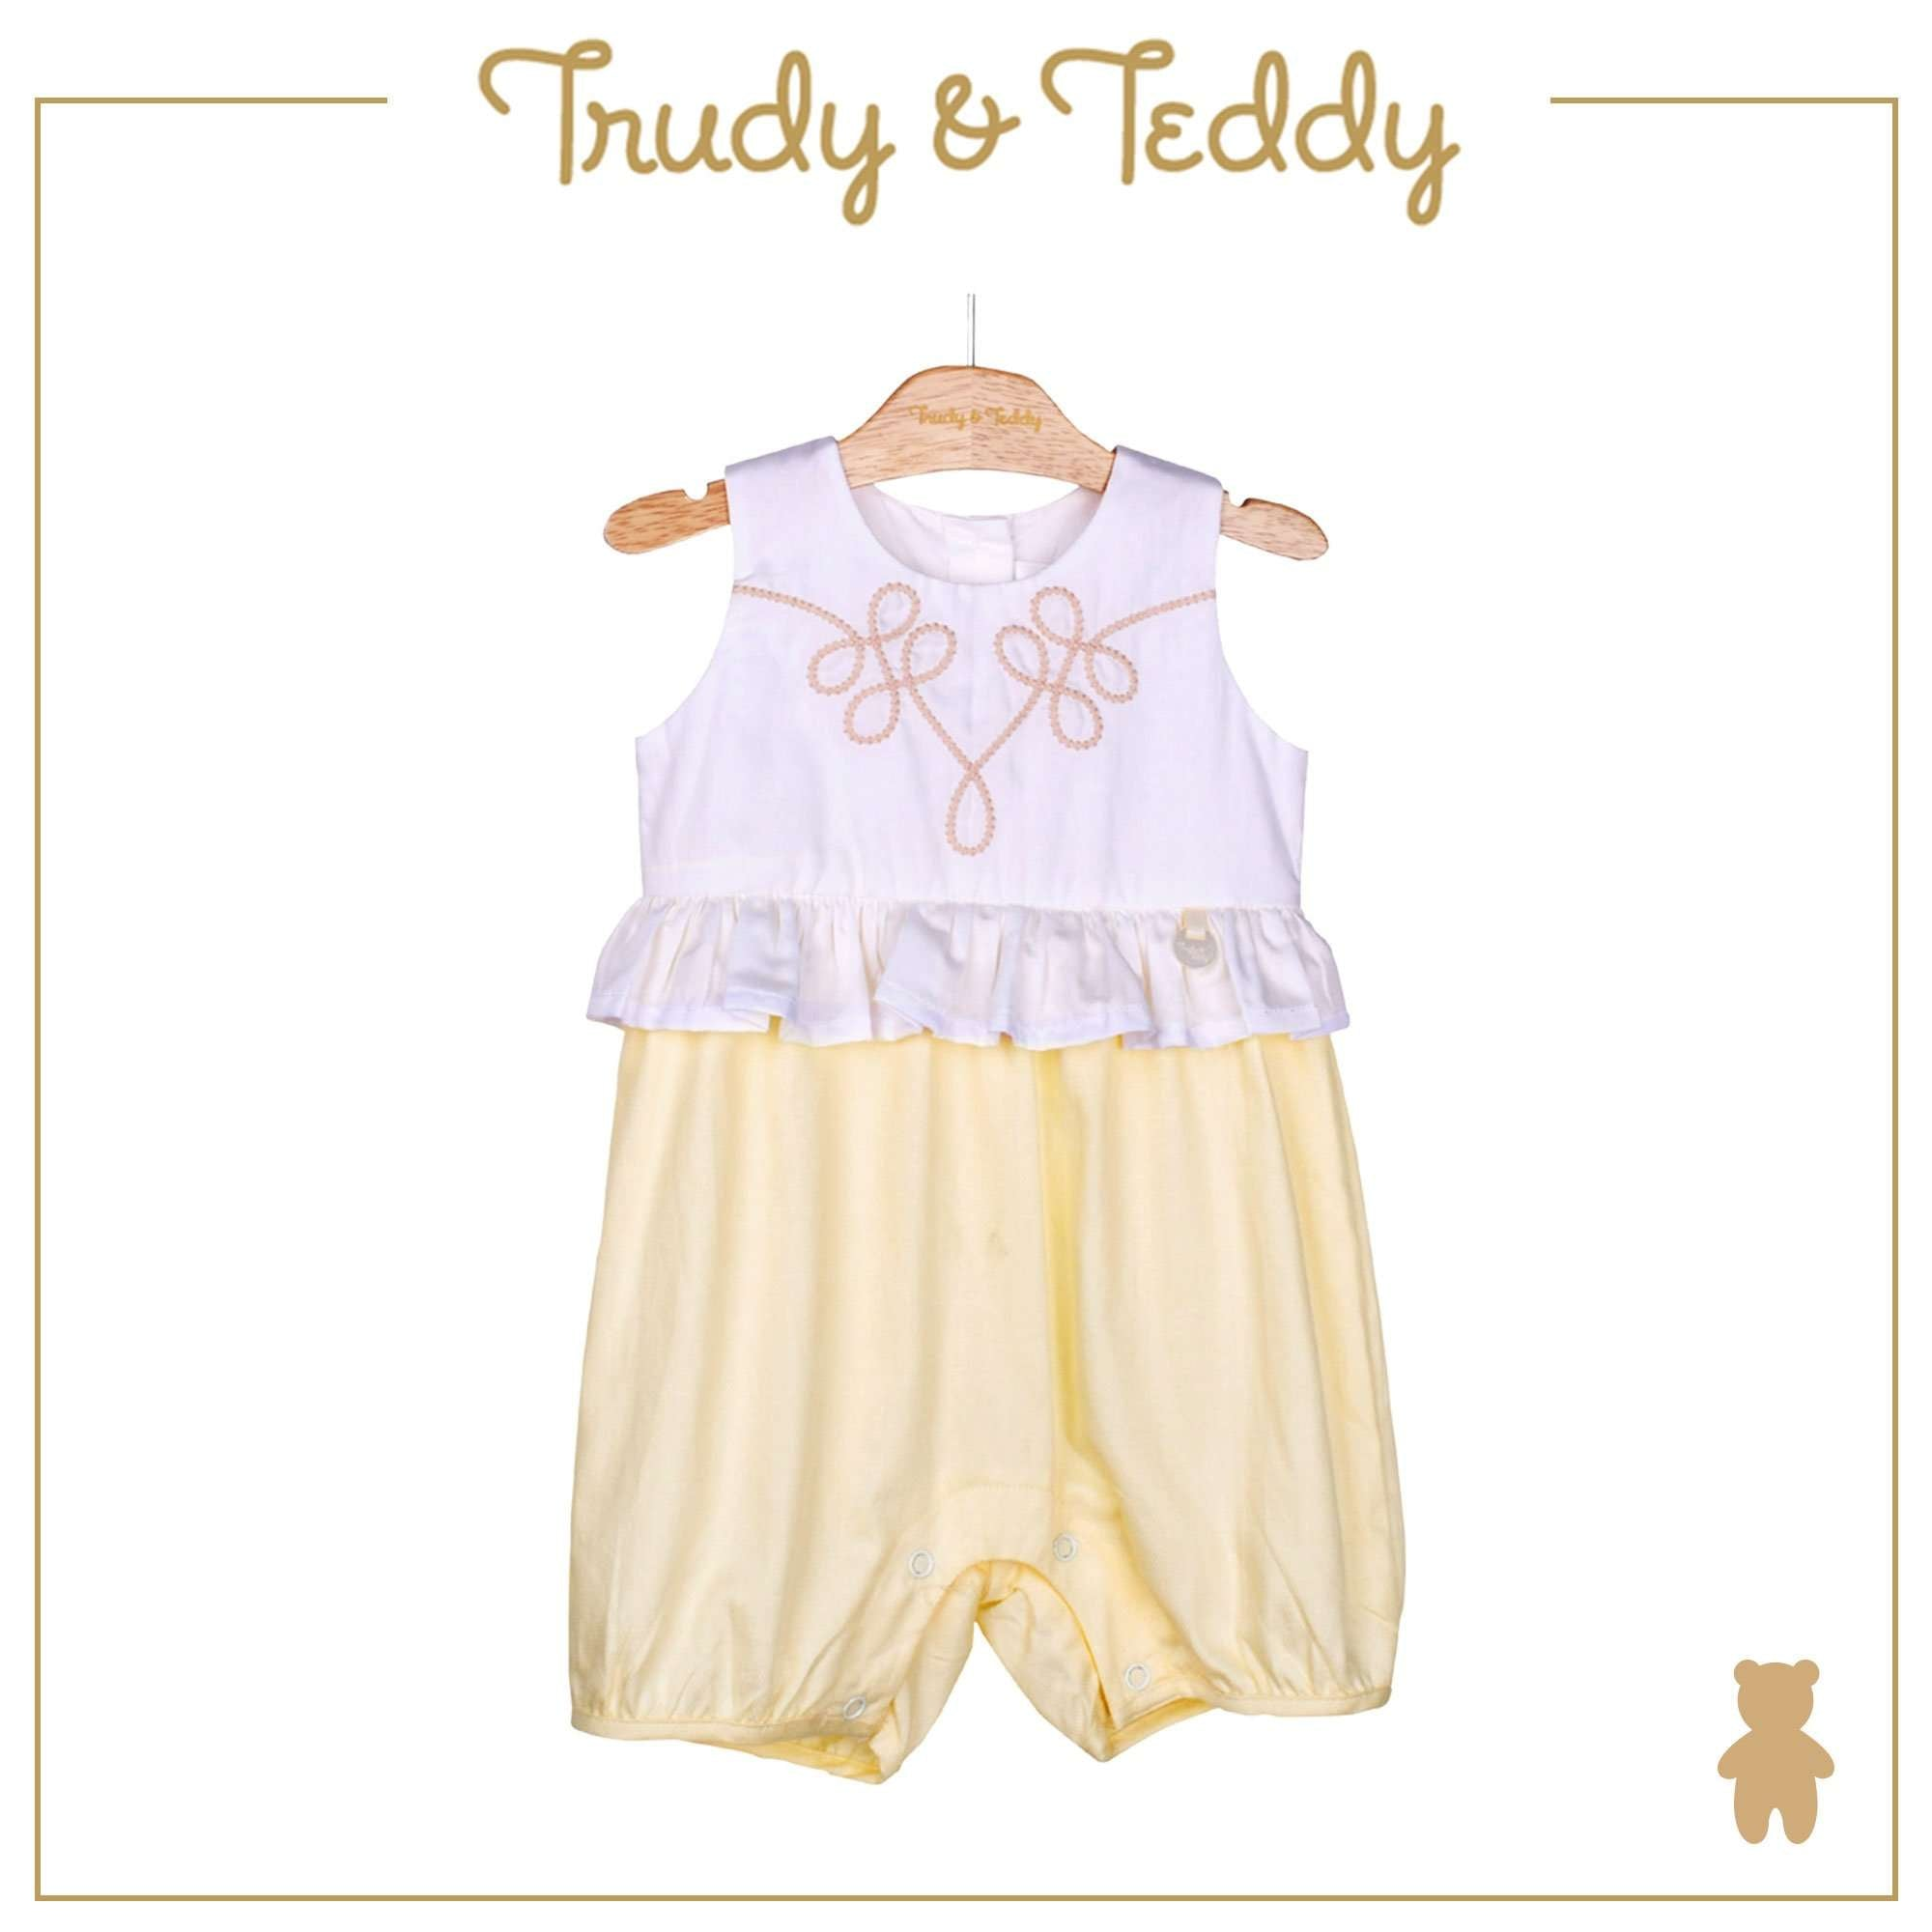 Trudy & Teddy Baby Girl Woven Sleeveless Romper- 810118-351 : Buy Trudy & Teddy online at CMG.MY